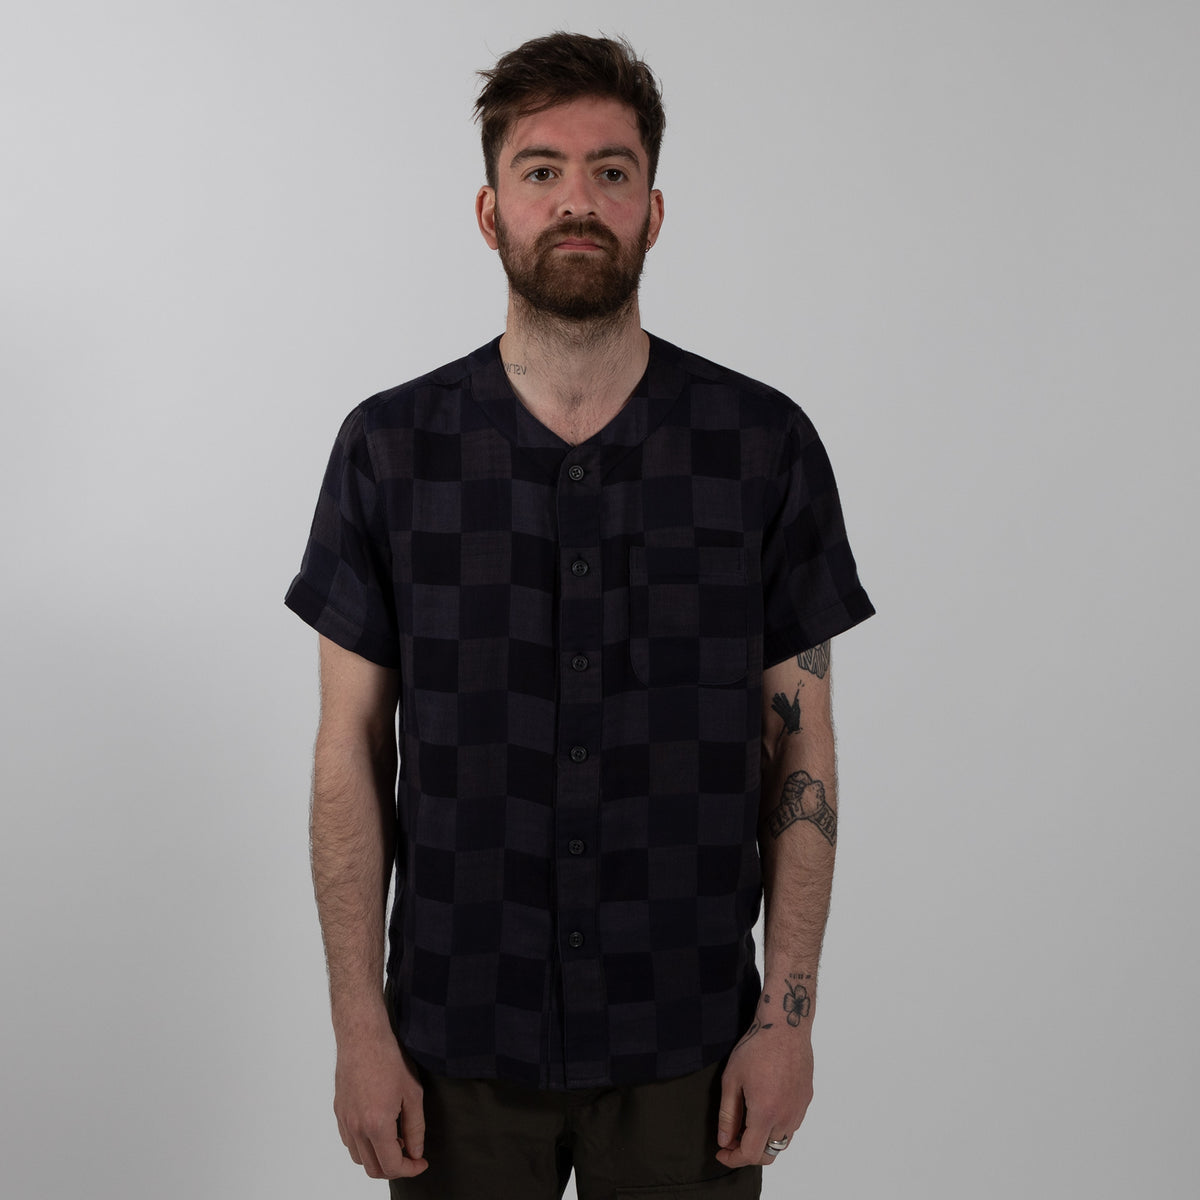 Krammer and Stoudt Baseball Shirt Black Navy Checkers Front Style